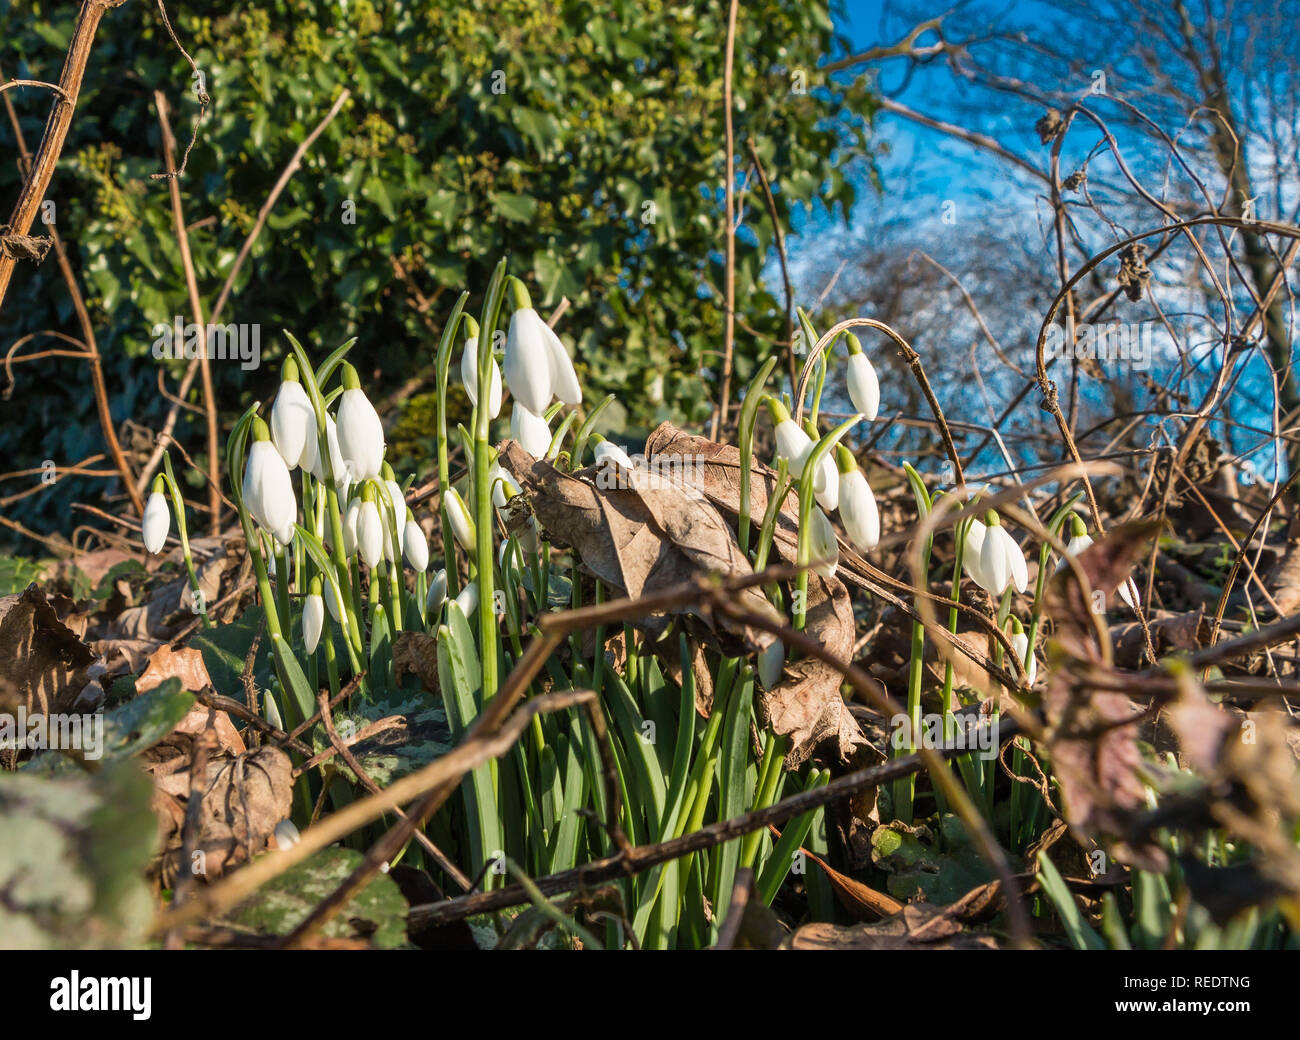 A group of wild snowdrops Galanthus in flower with surrounding leaf litter and a blue sky background Stock Photo